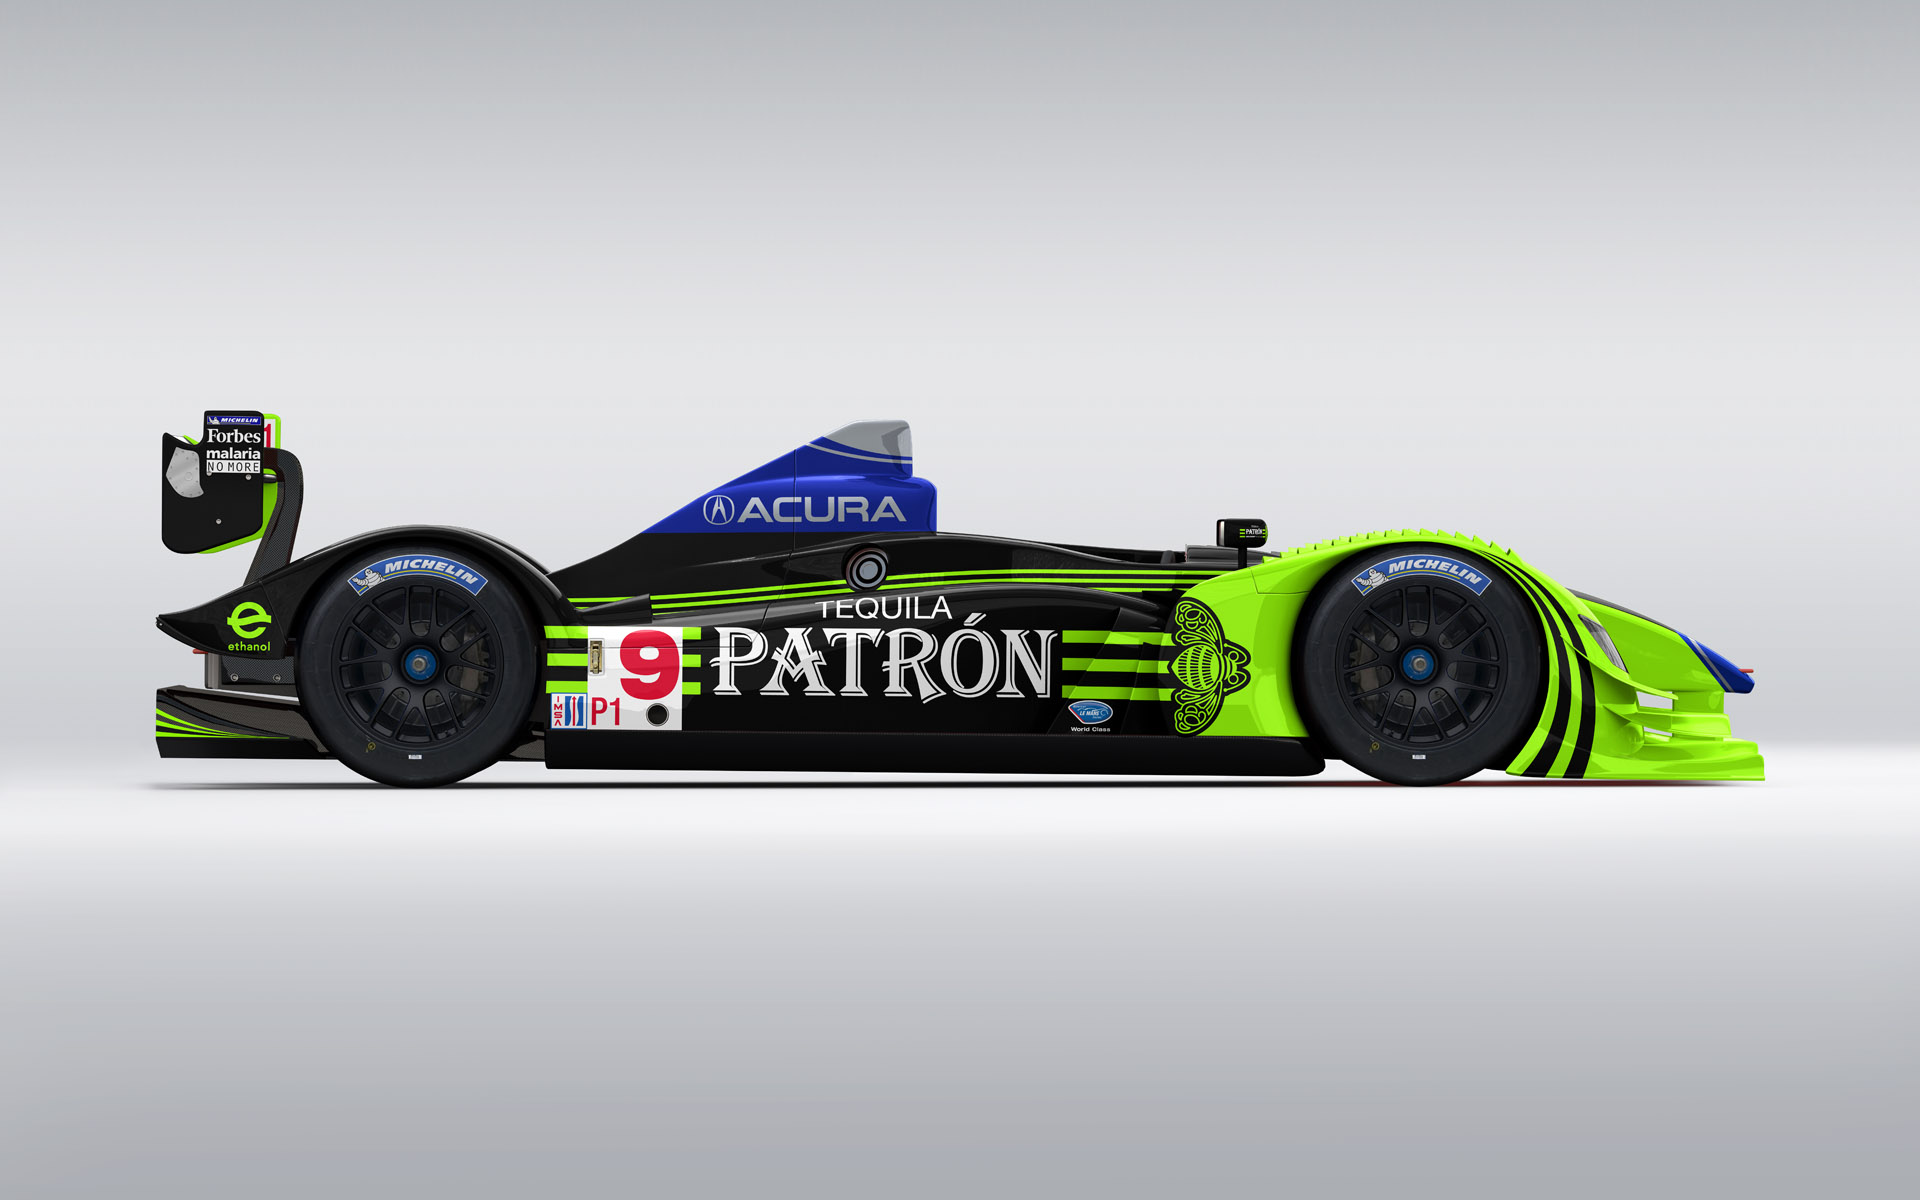 2009 Pátron Highcroft Racing Acura ARX-02a LMP1 Livery Visualization